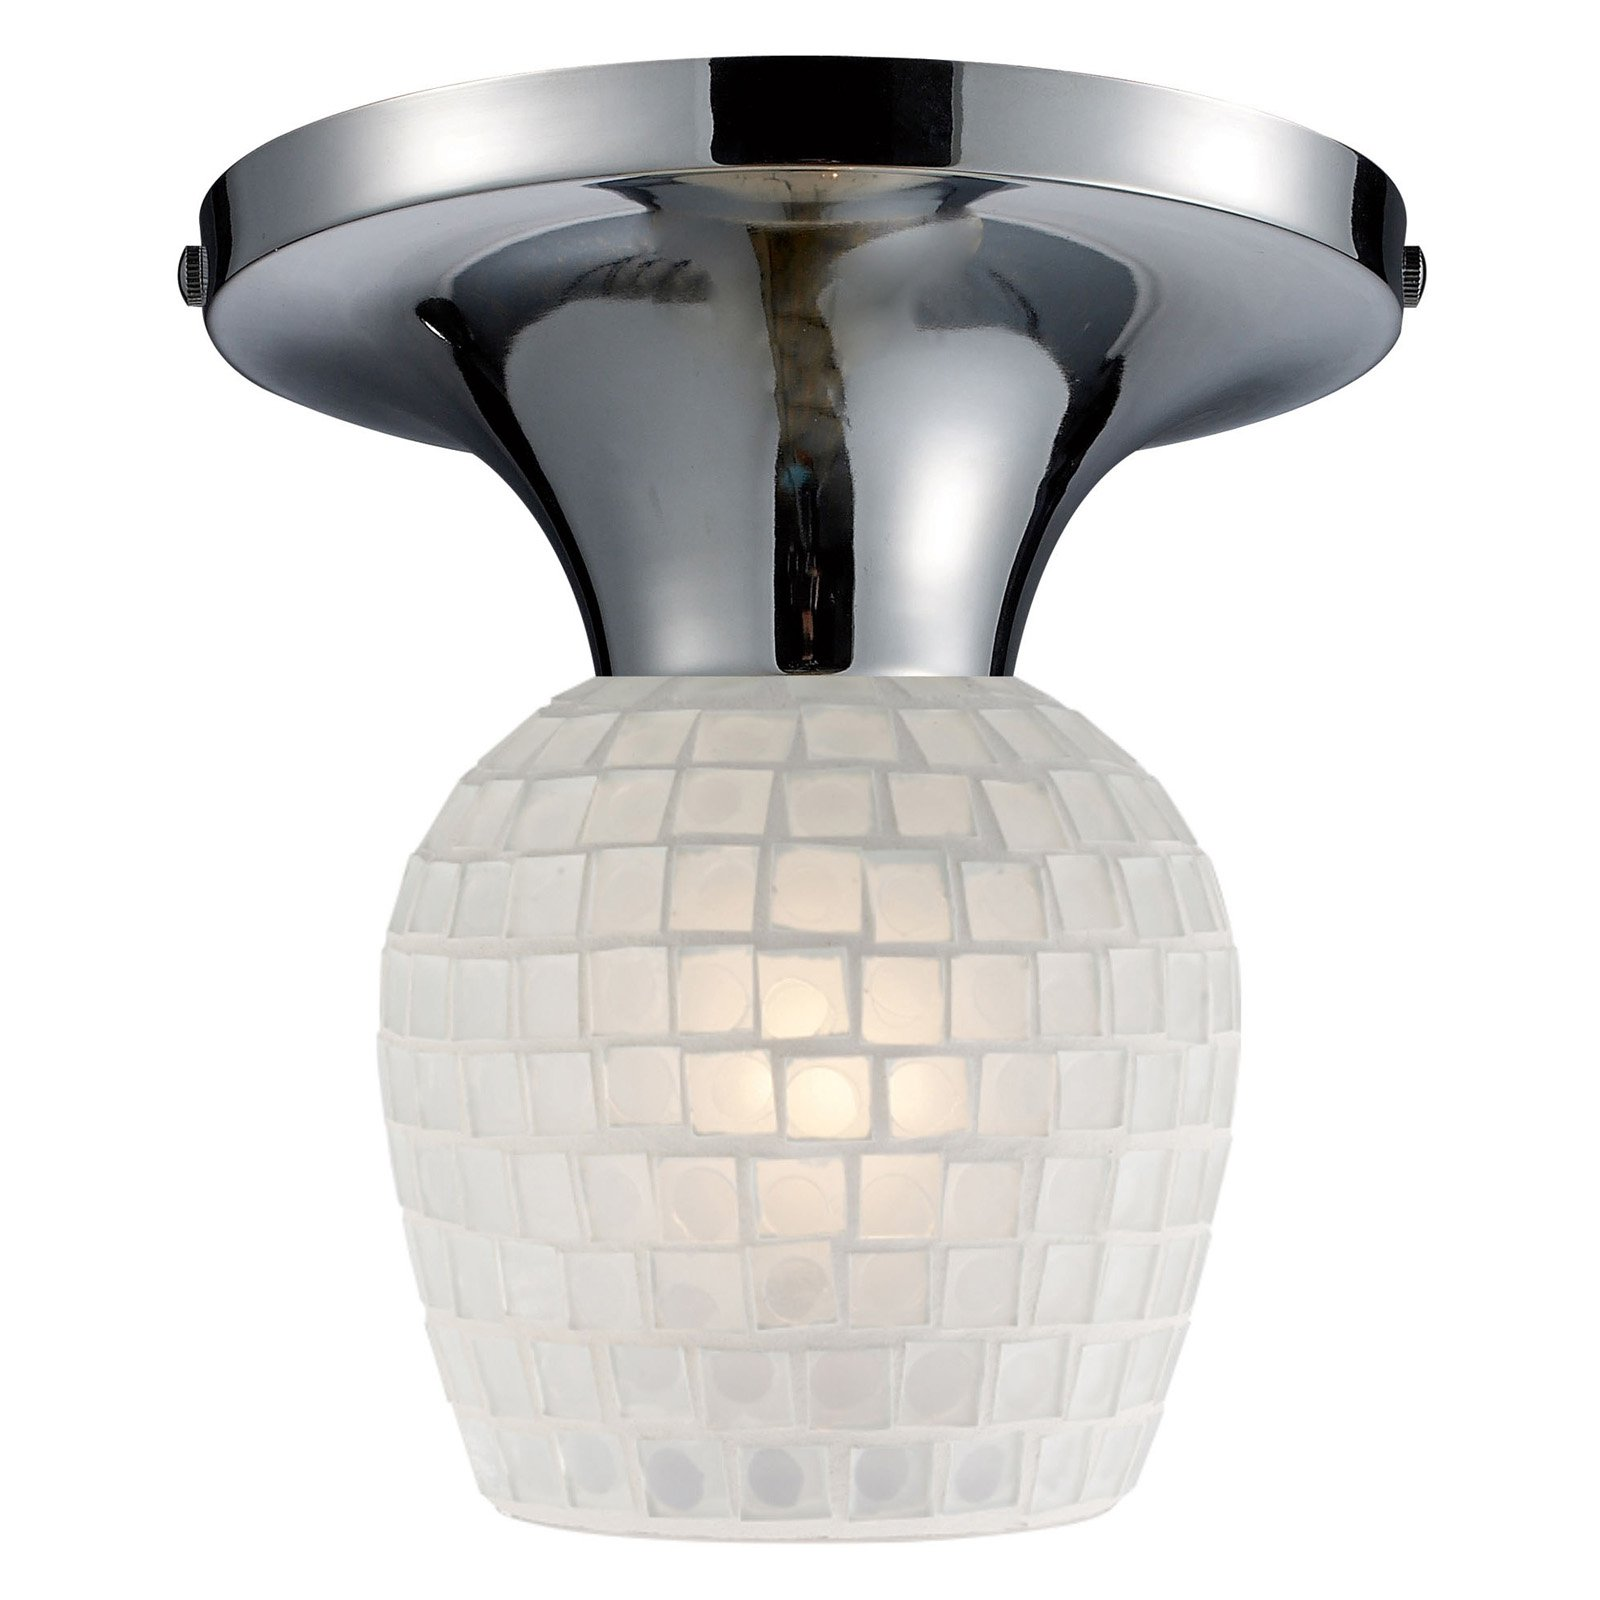 ELK Lighting Celina Square Glass Semi Flush Mount Light